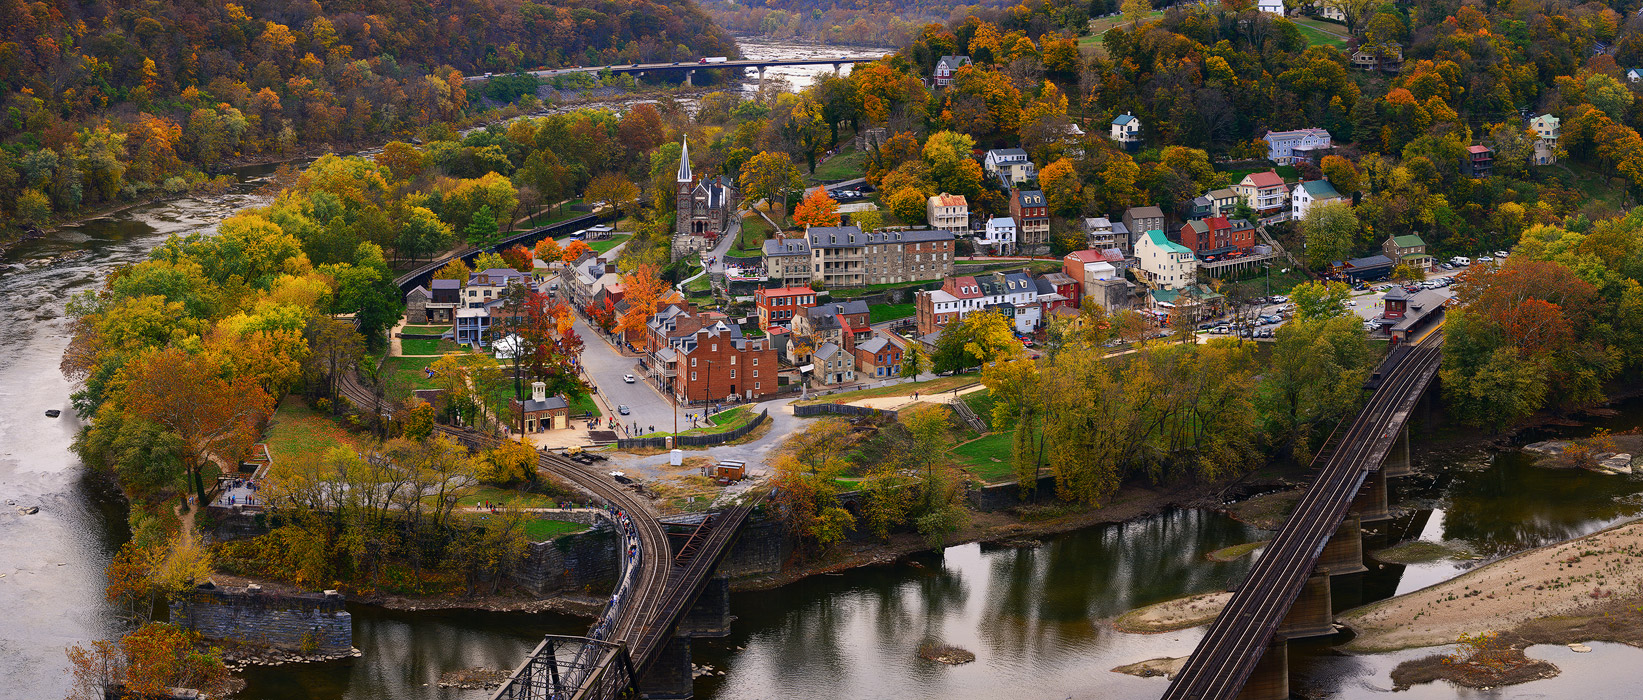 Harpers Ferry, West Virginia, Maryland, Maryland Heights, panoramic, autumn, fall, Potomac River, Shenandoah River, railroad, old, city, town, historic, bernard chen, photo